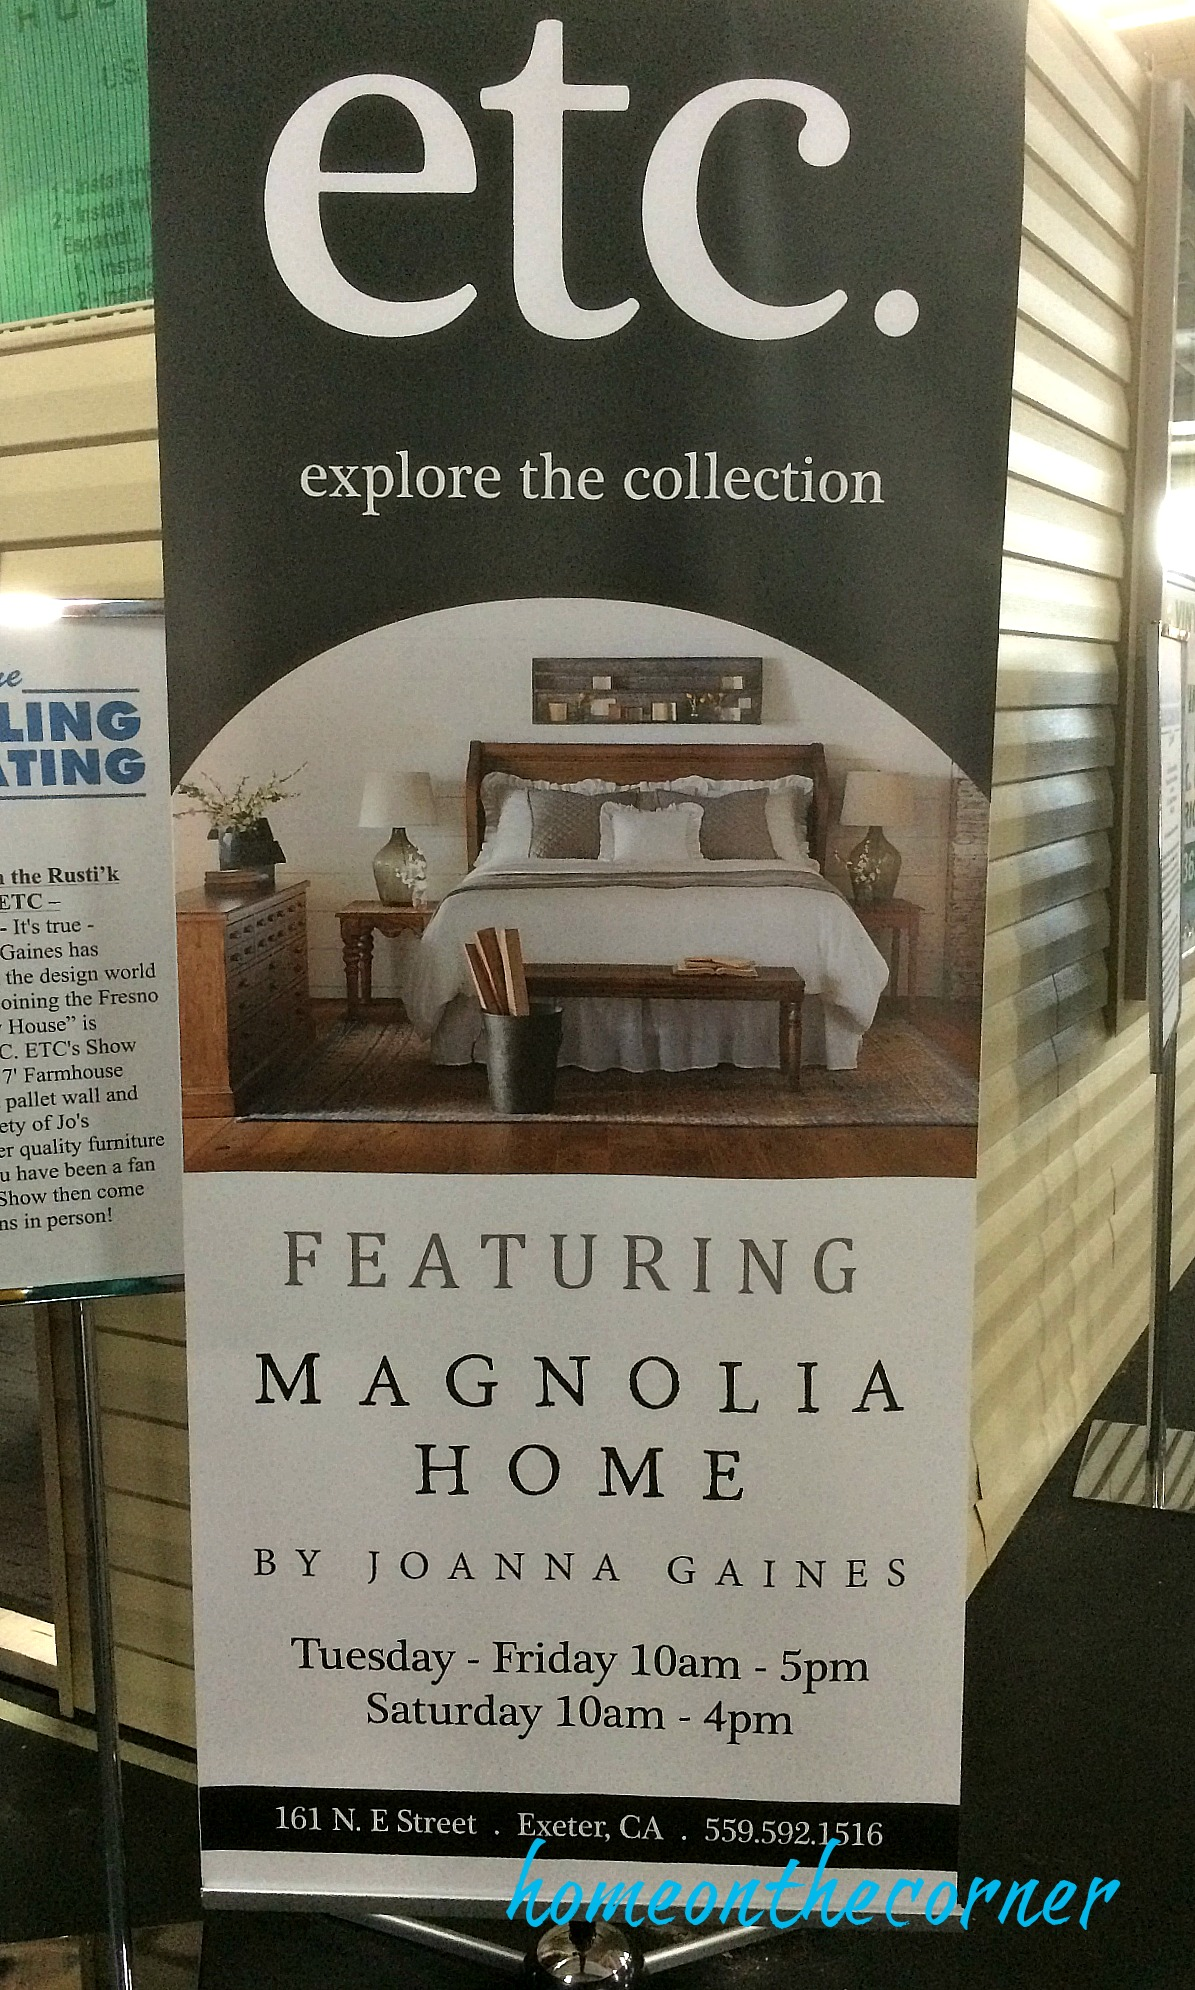 home improvement show Magnolia Home Exploare the Collection